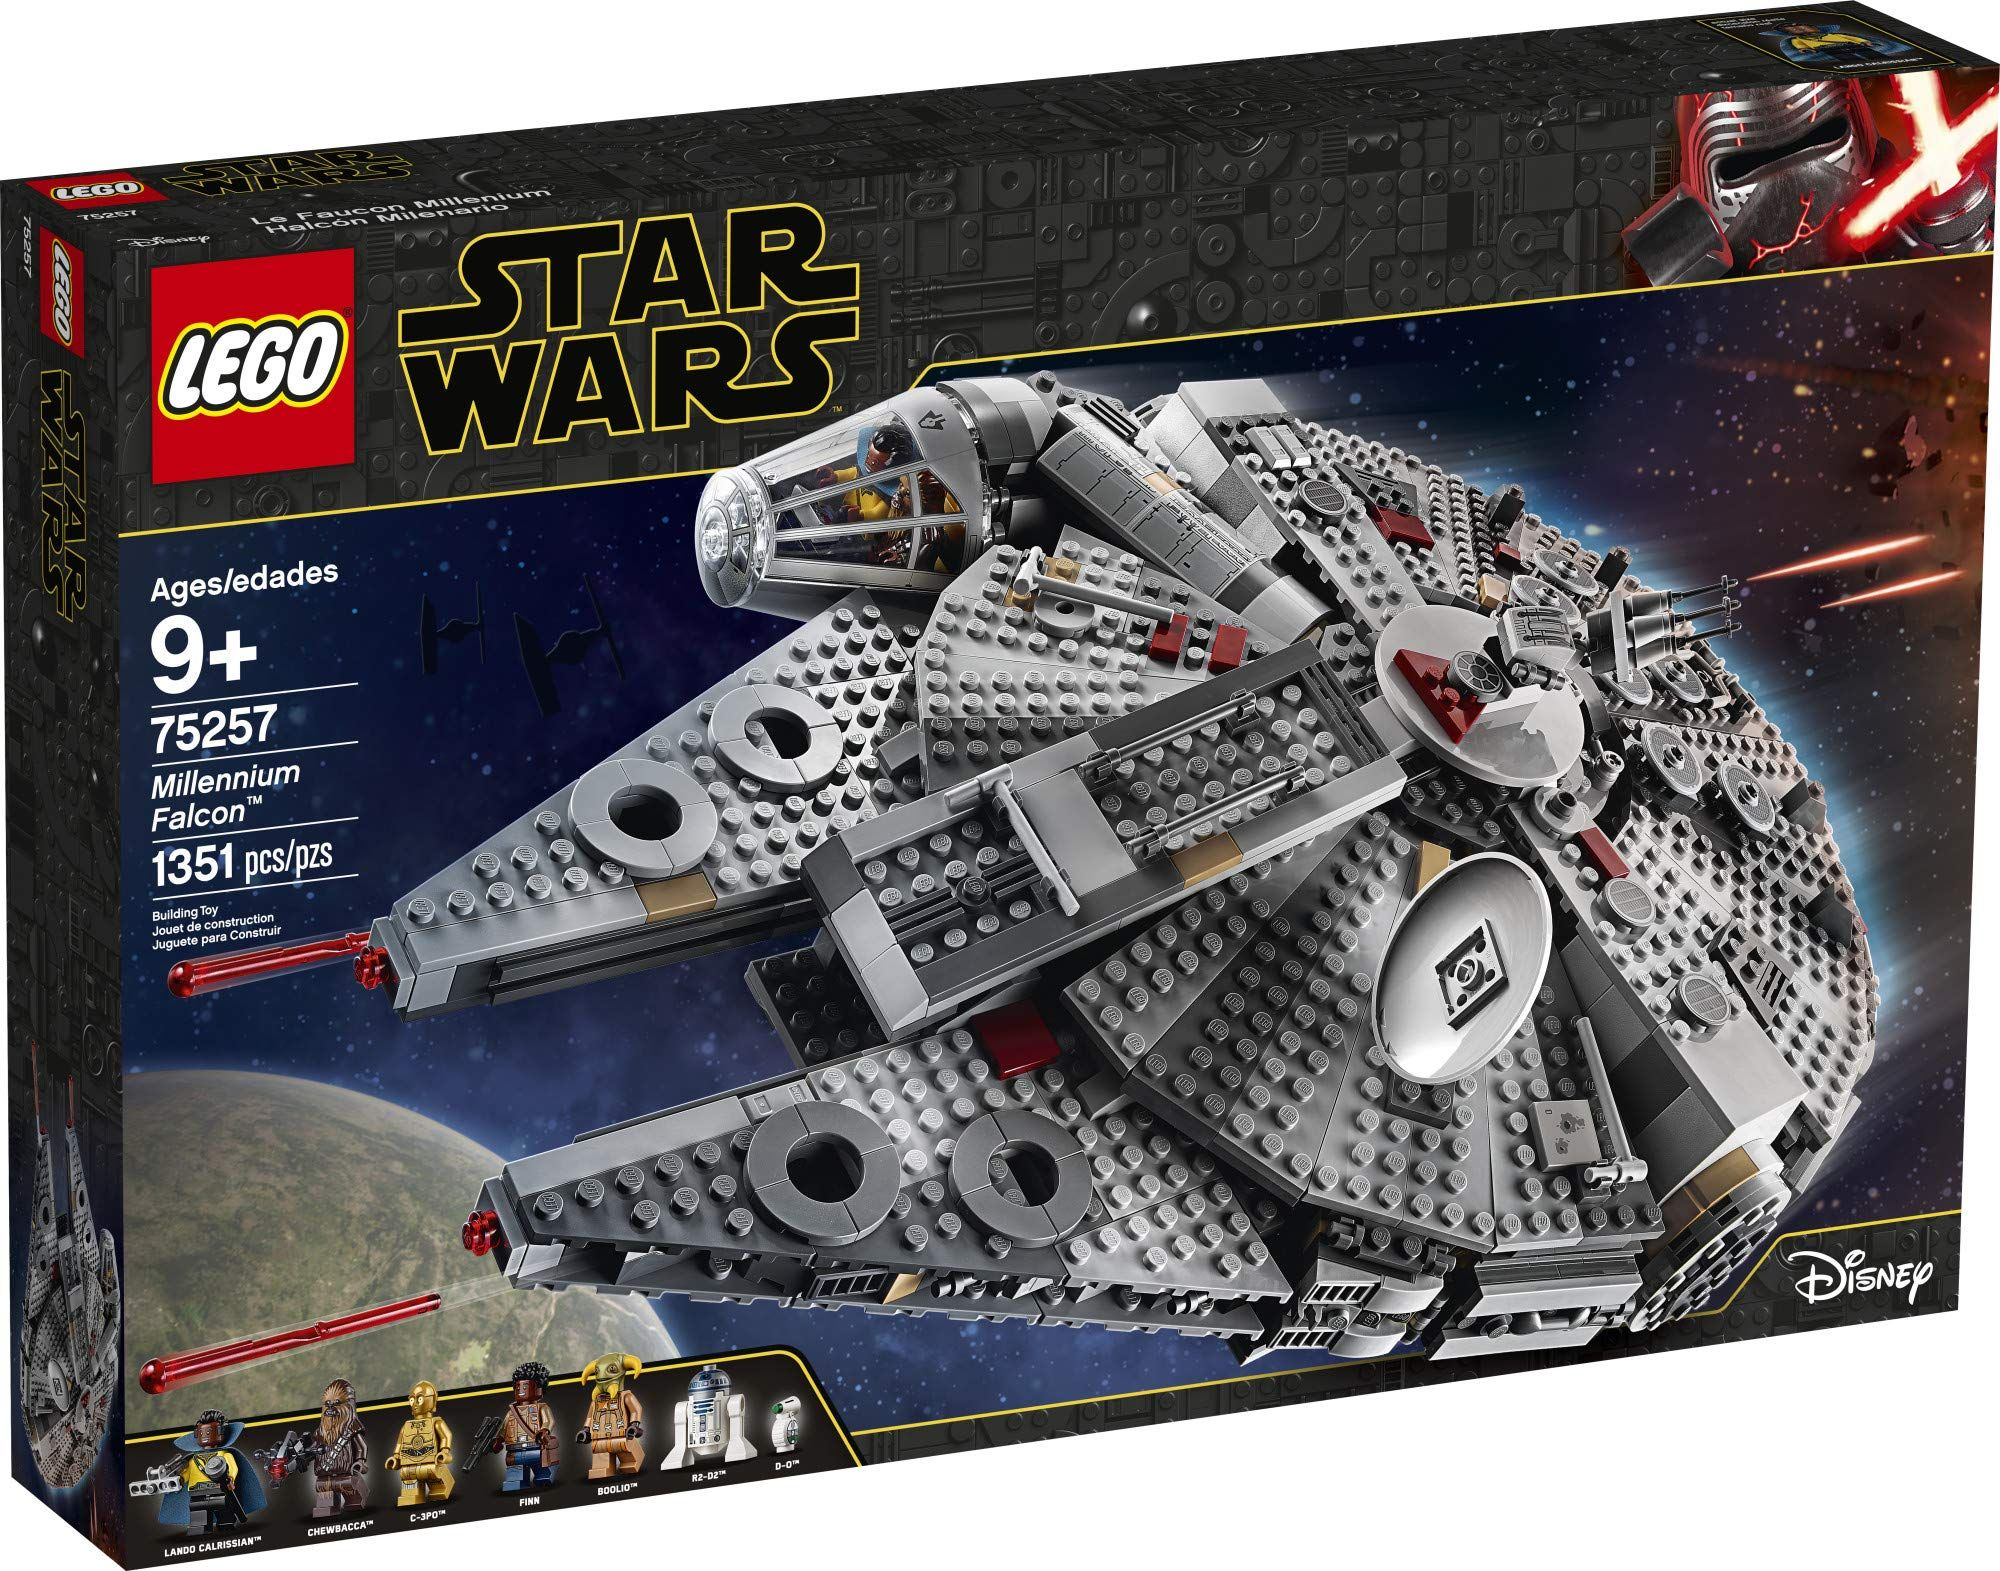 Lego Star Wars The Rise Of Skywalker Millennium Falcon 75257 Starship Model Building Kit And Minifigures 1 351 Pieces In 2021 Lego Star Wars Sets Lego Star Wars Lego Star